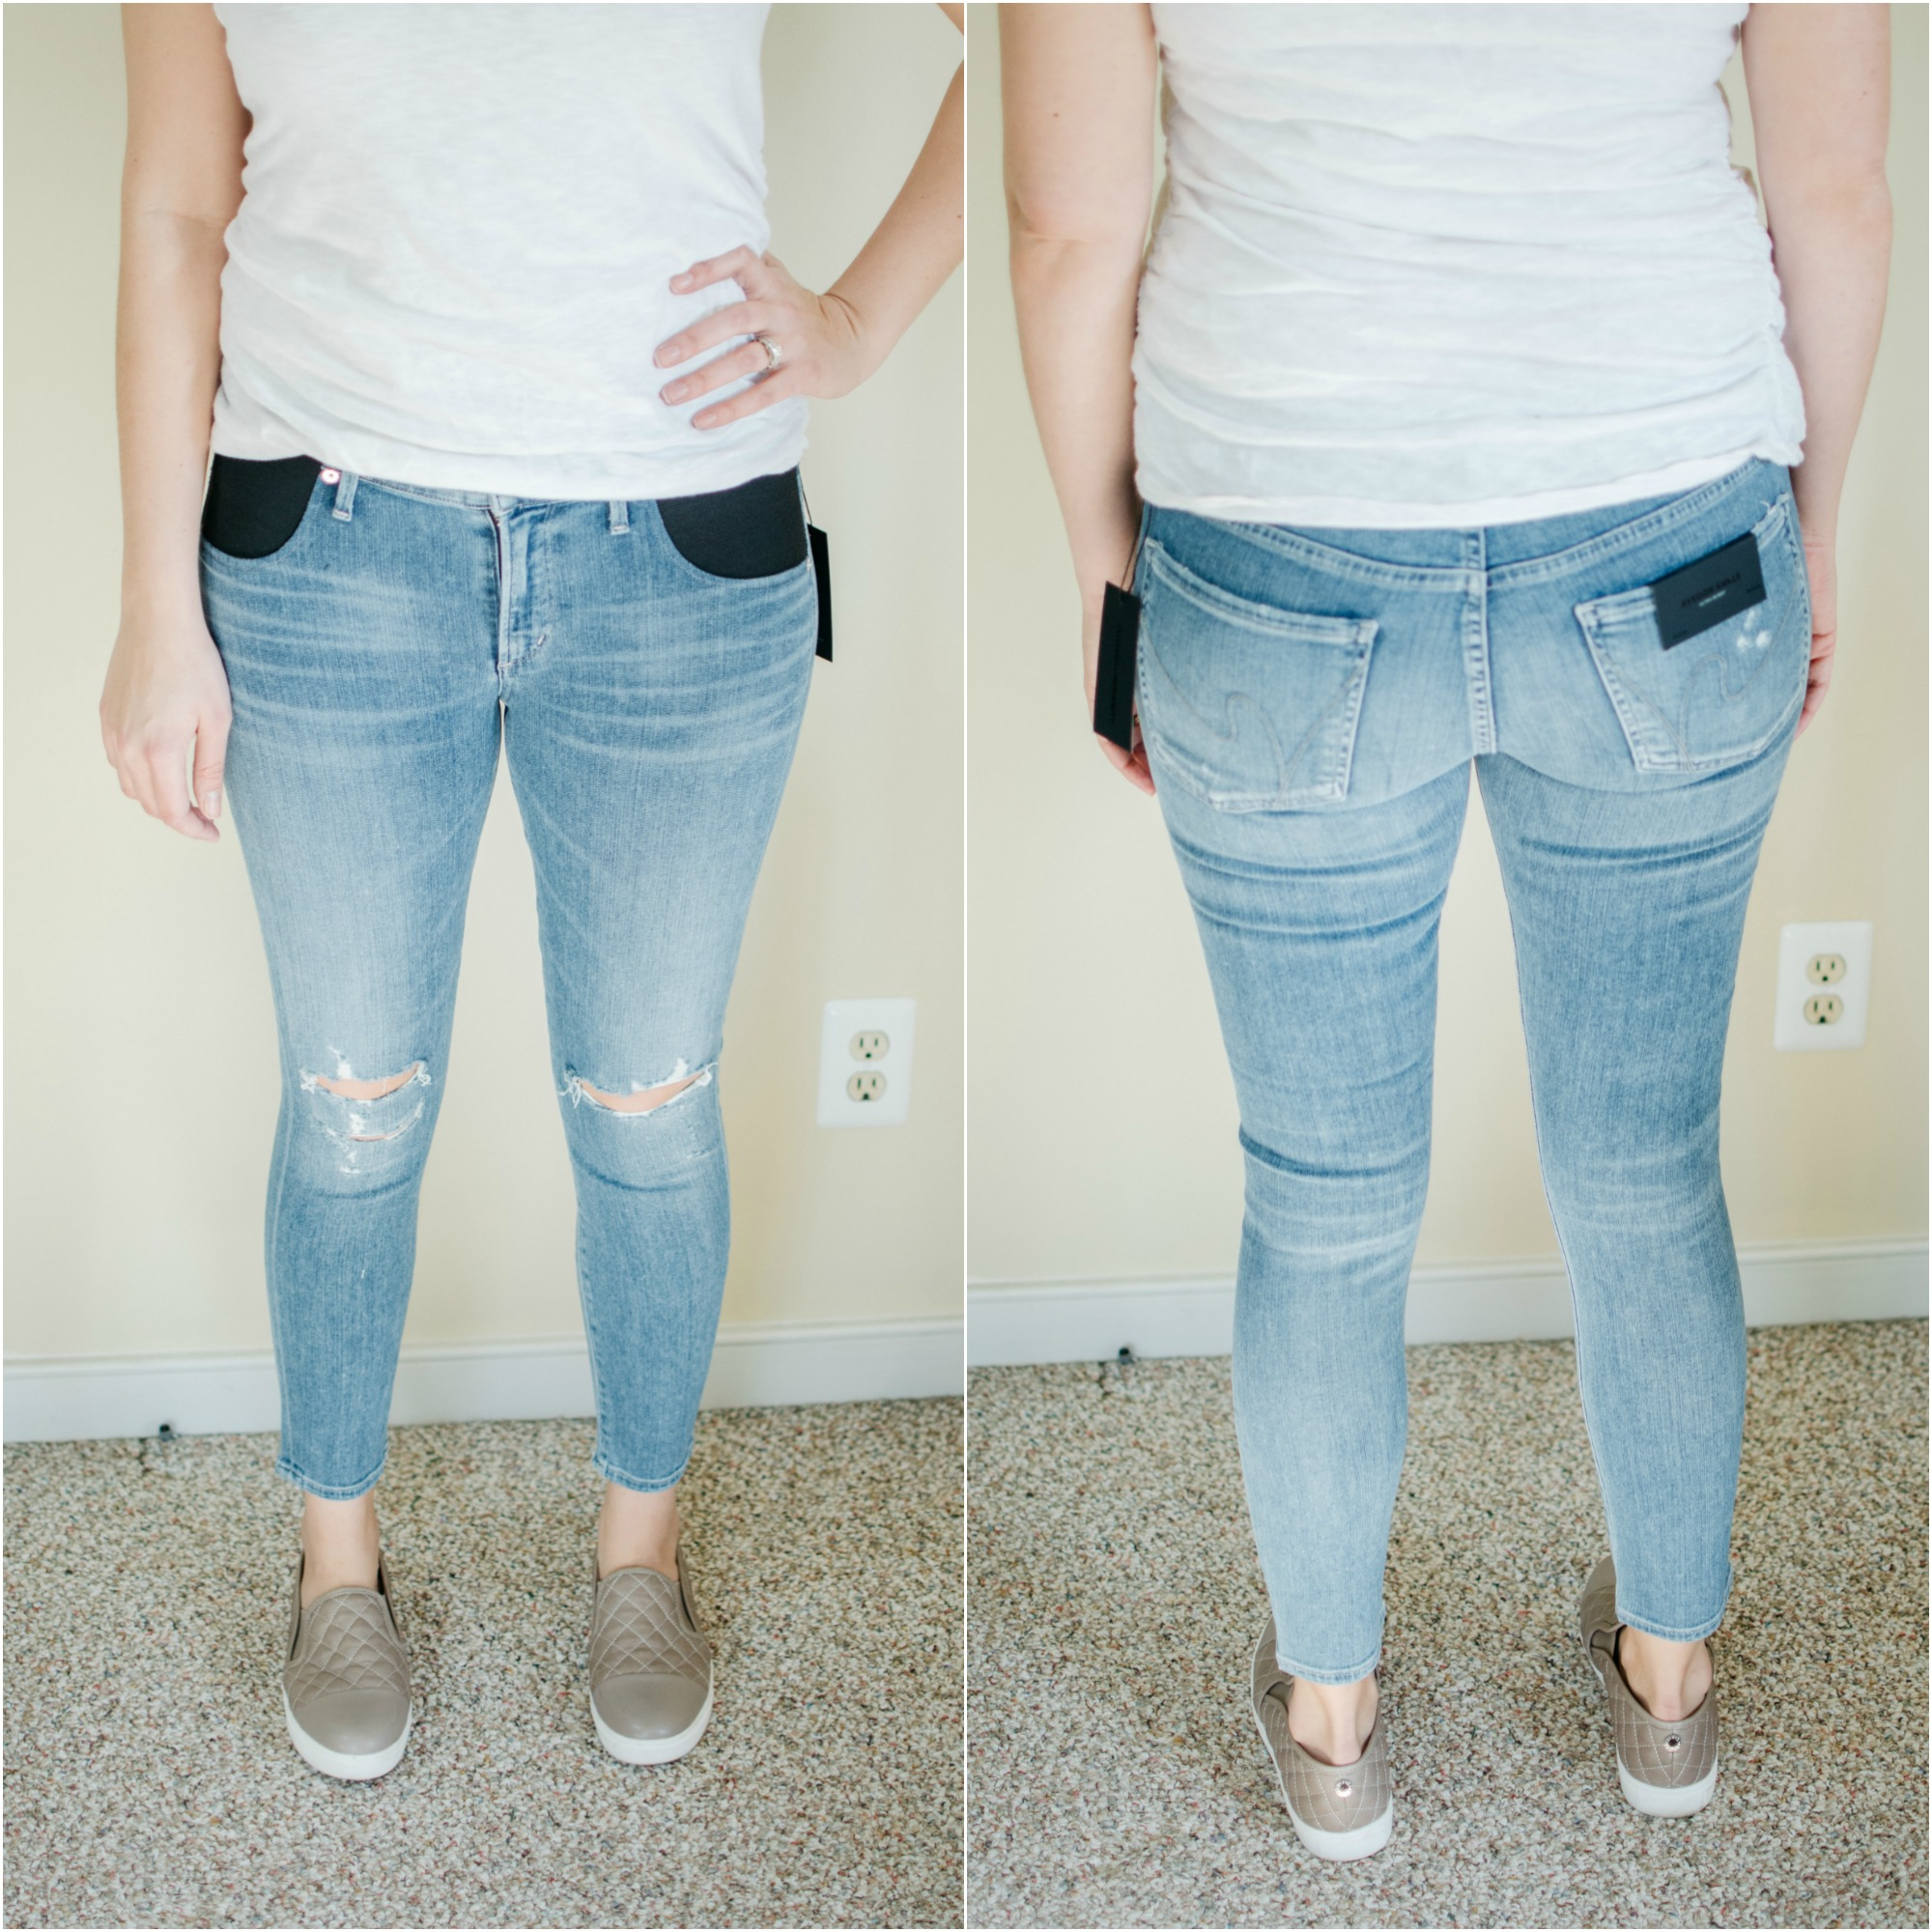 Citizens of Humanity maternity jeans - designer maternity jeans reviews | See reviews of over 15 maternity jeans brands by clicking through to this post! | bylaurenm.com